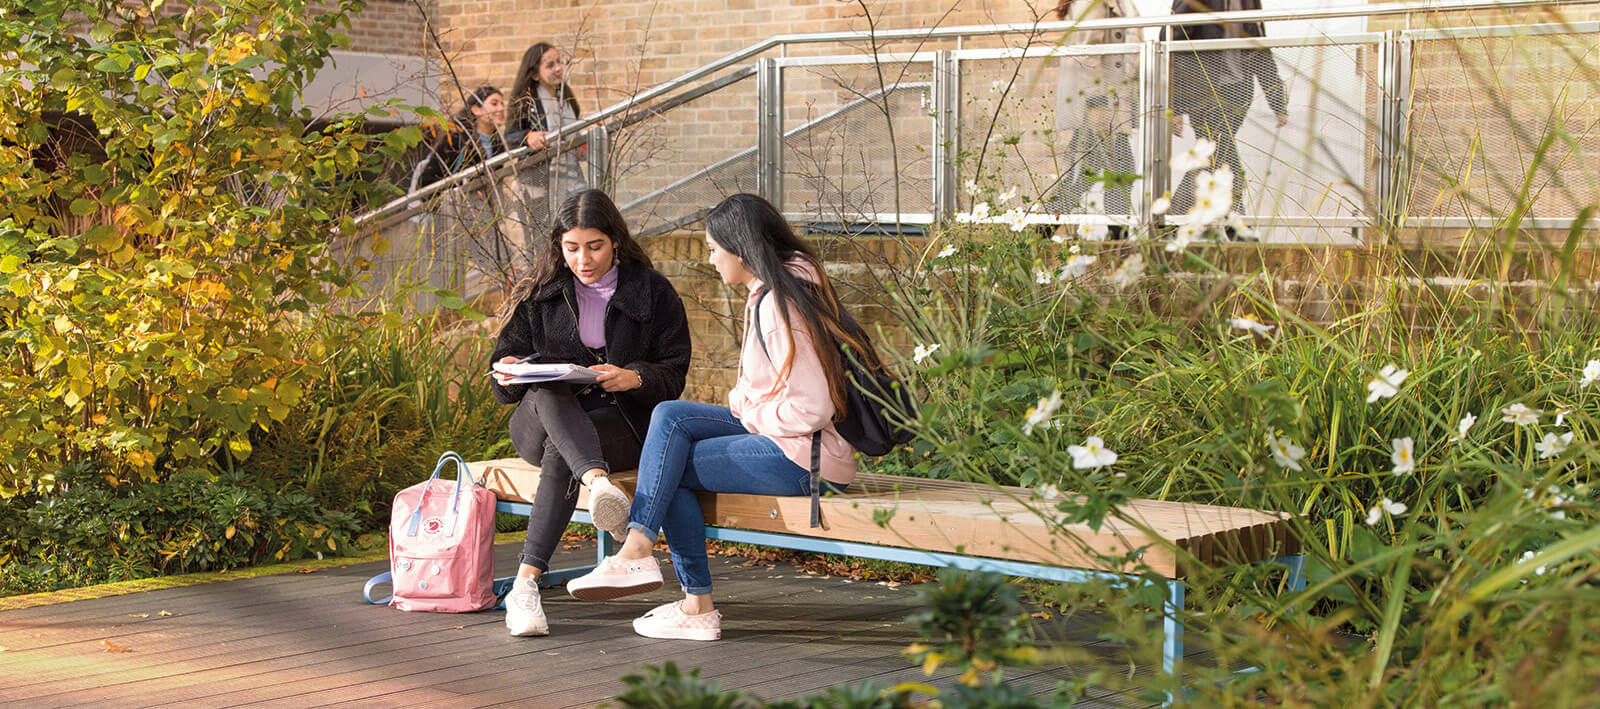 Tow female students sitting on a bench chatting and looking at a notepad